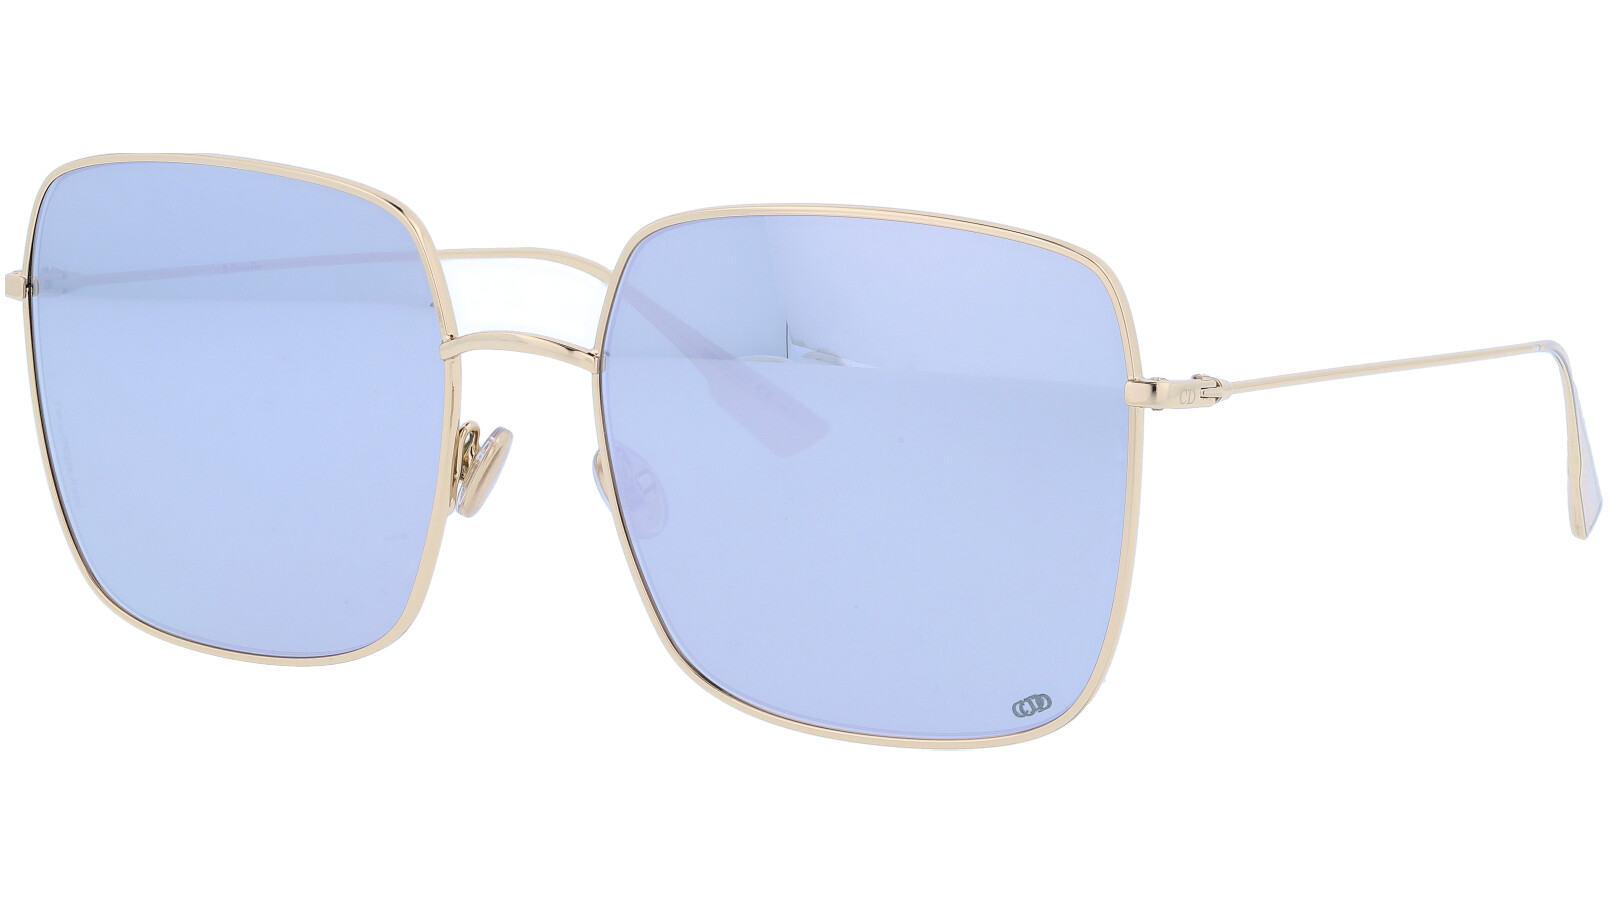 DIOR DIORSTELLAIRE1 DDB07 59 GOLD Sunglasses